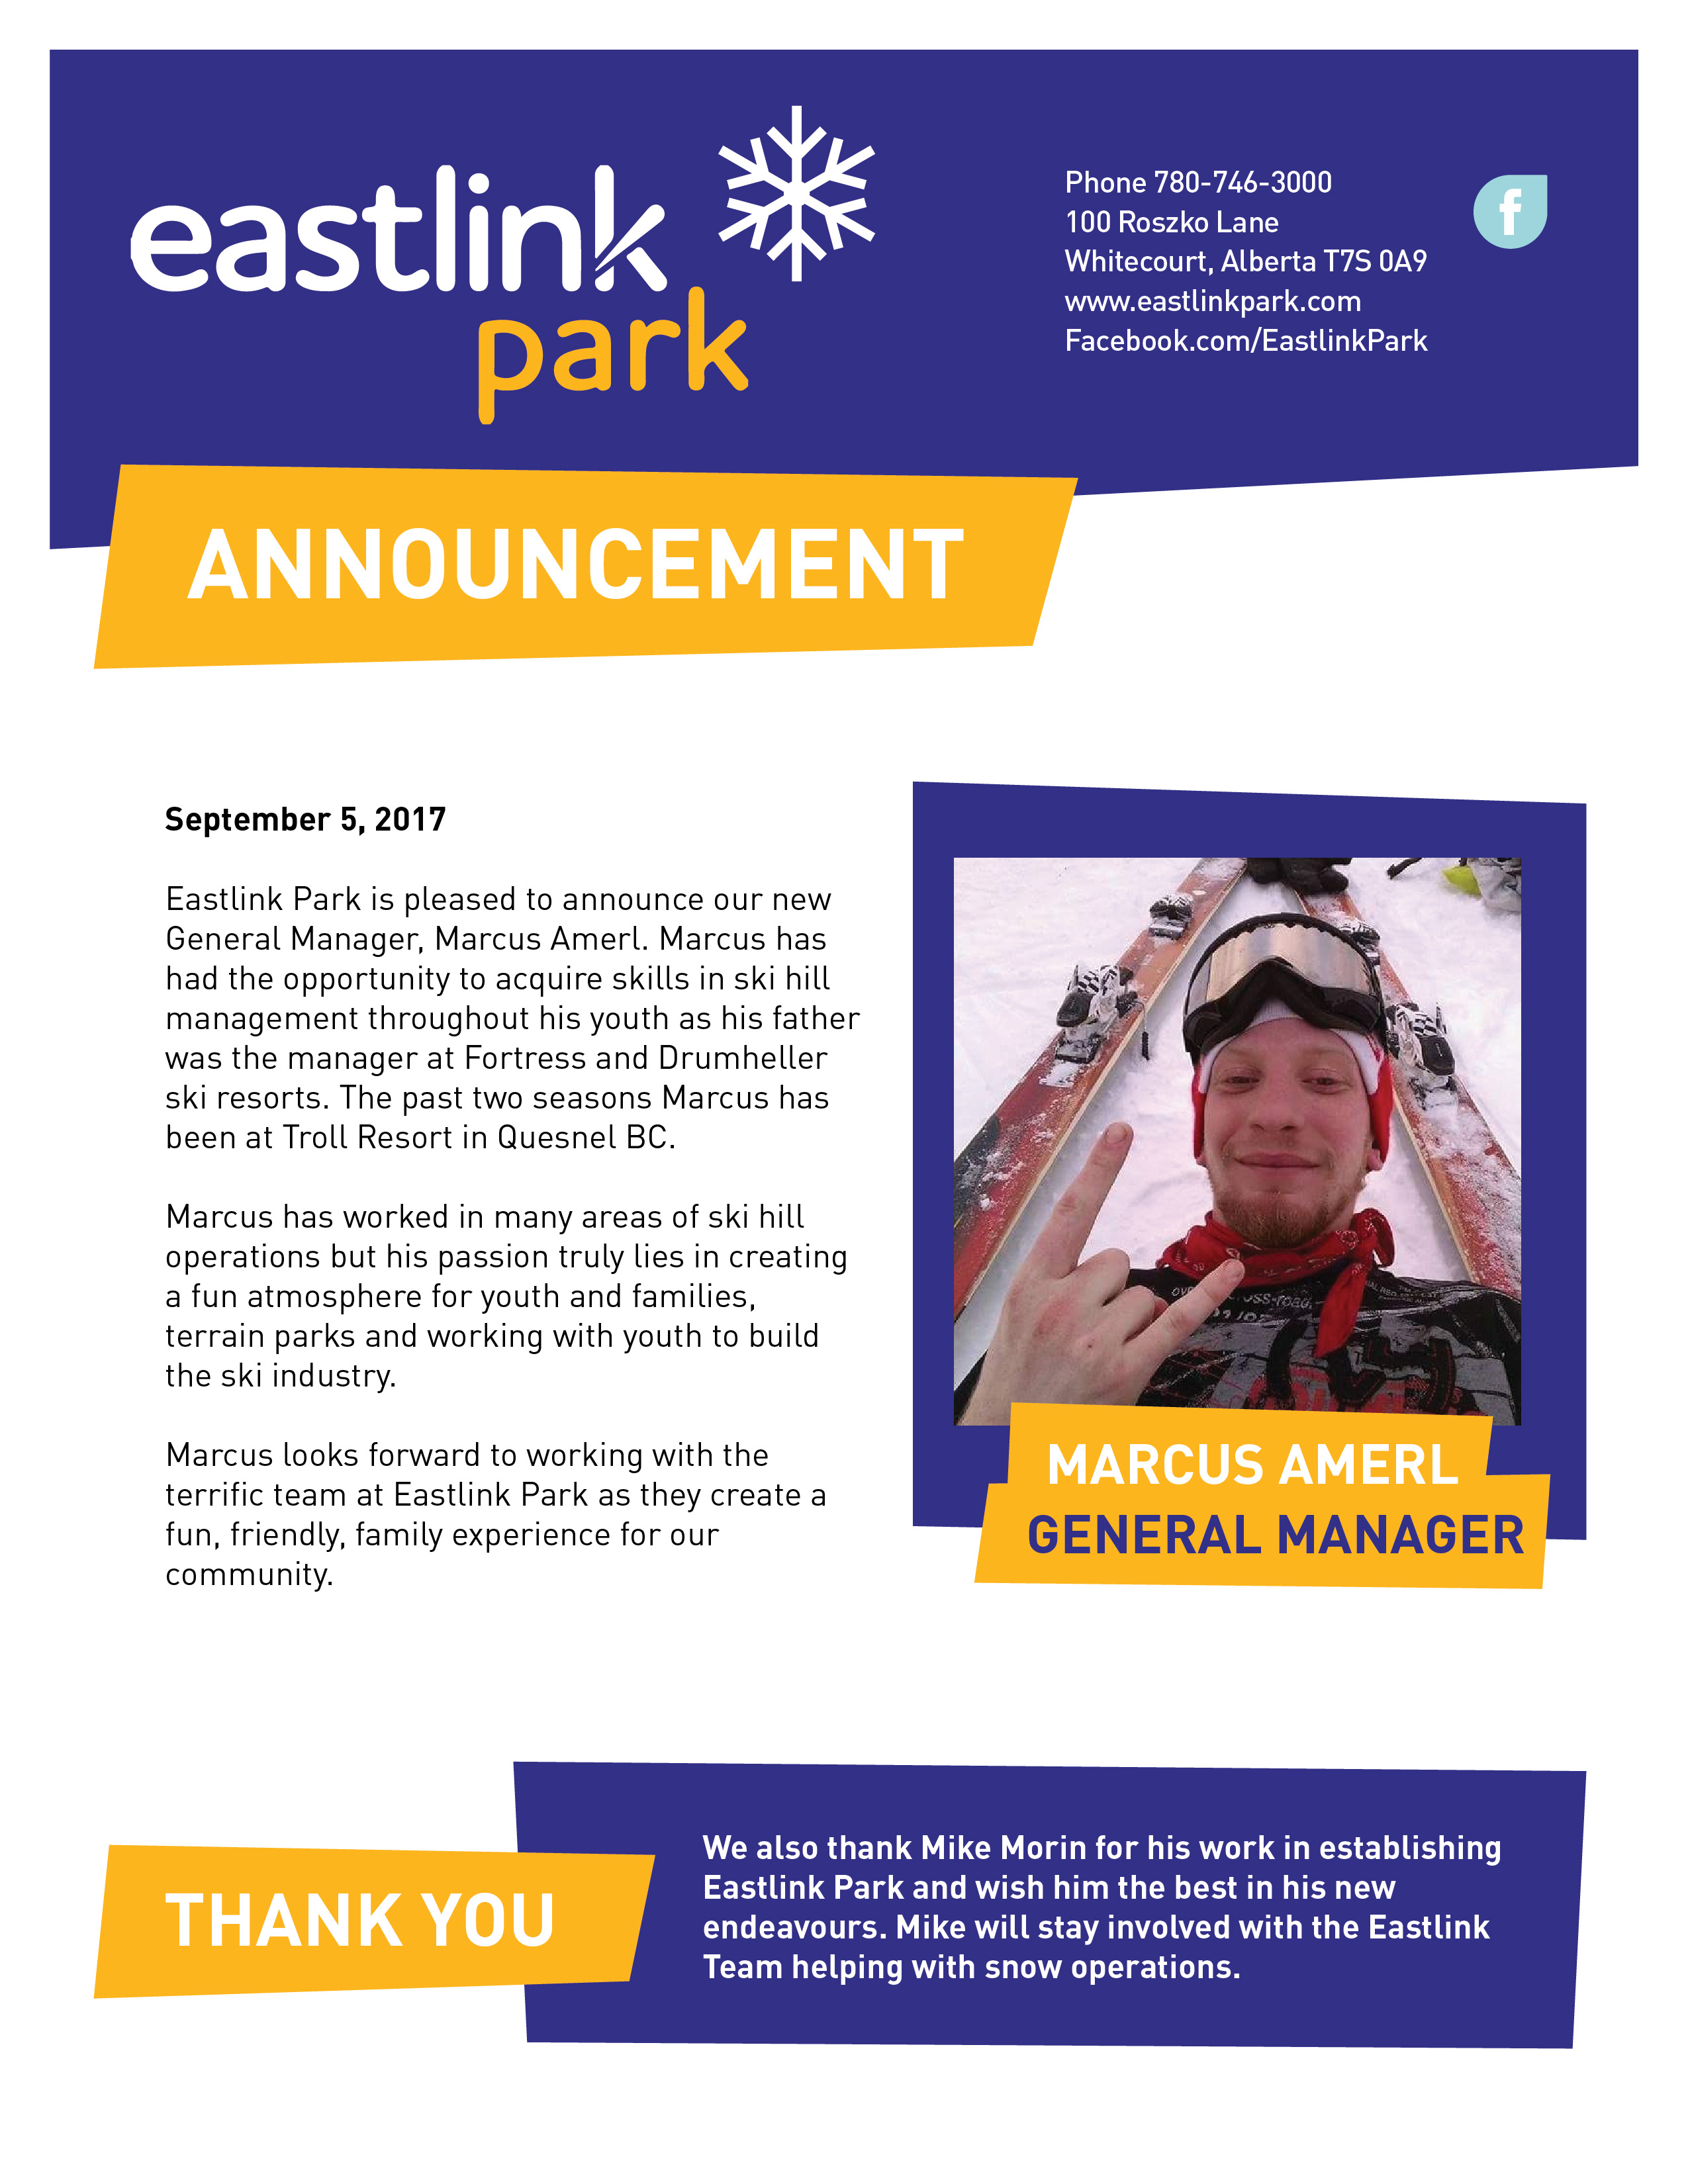 Welcome Marcus Eastlink Park 116 likes · 1 talking about this. eastlink park